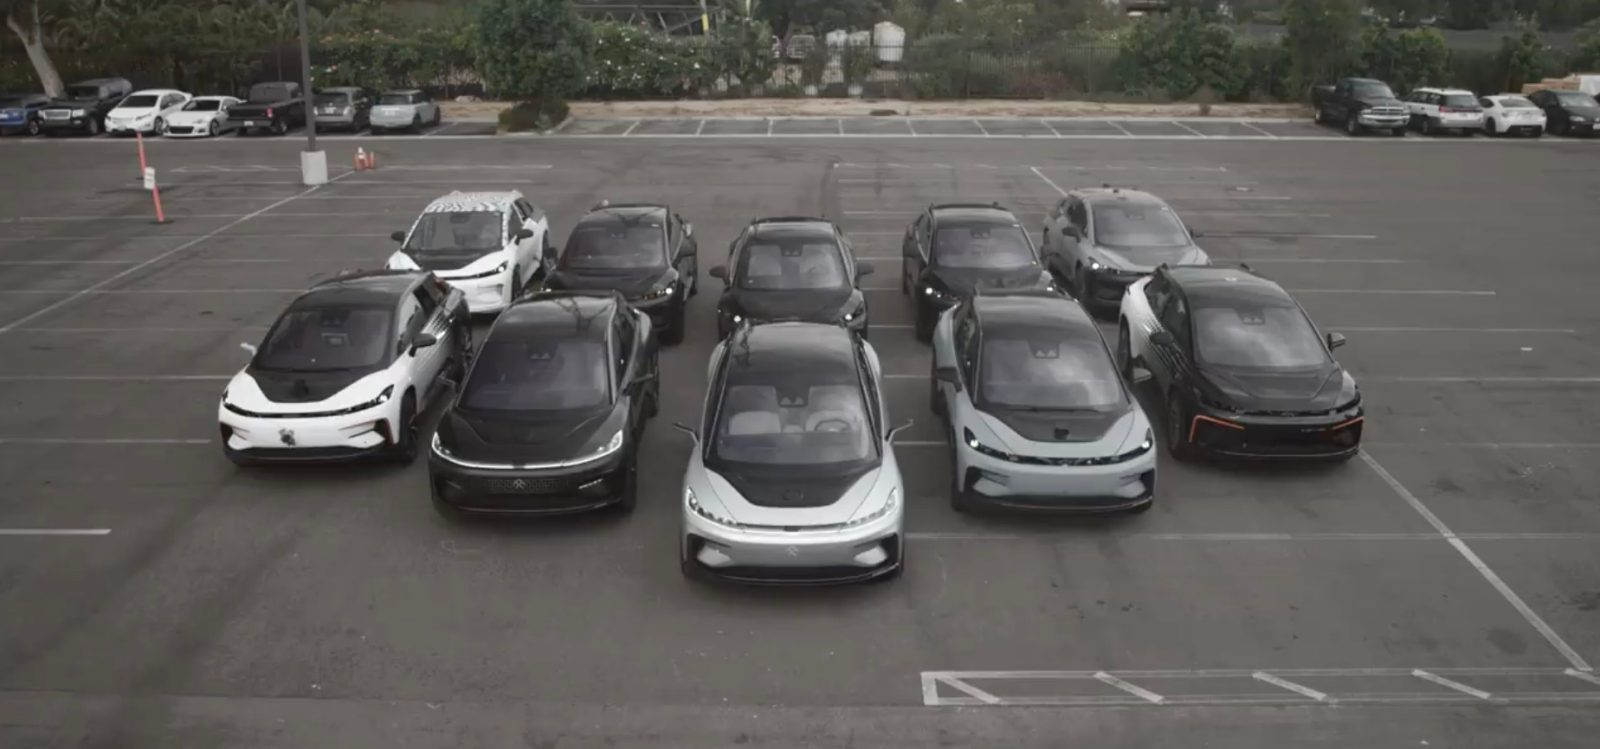 hight resolution of faraday future settles dispute with investor but it s not out of the woods